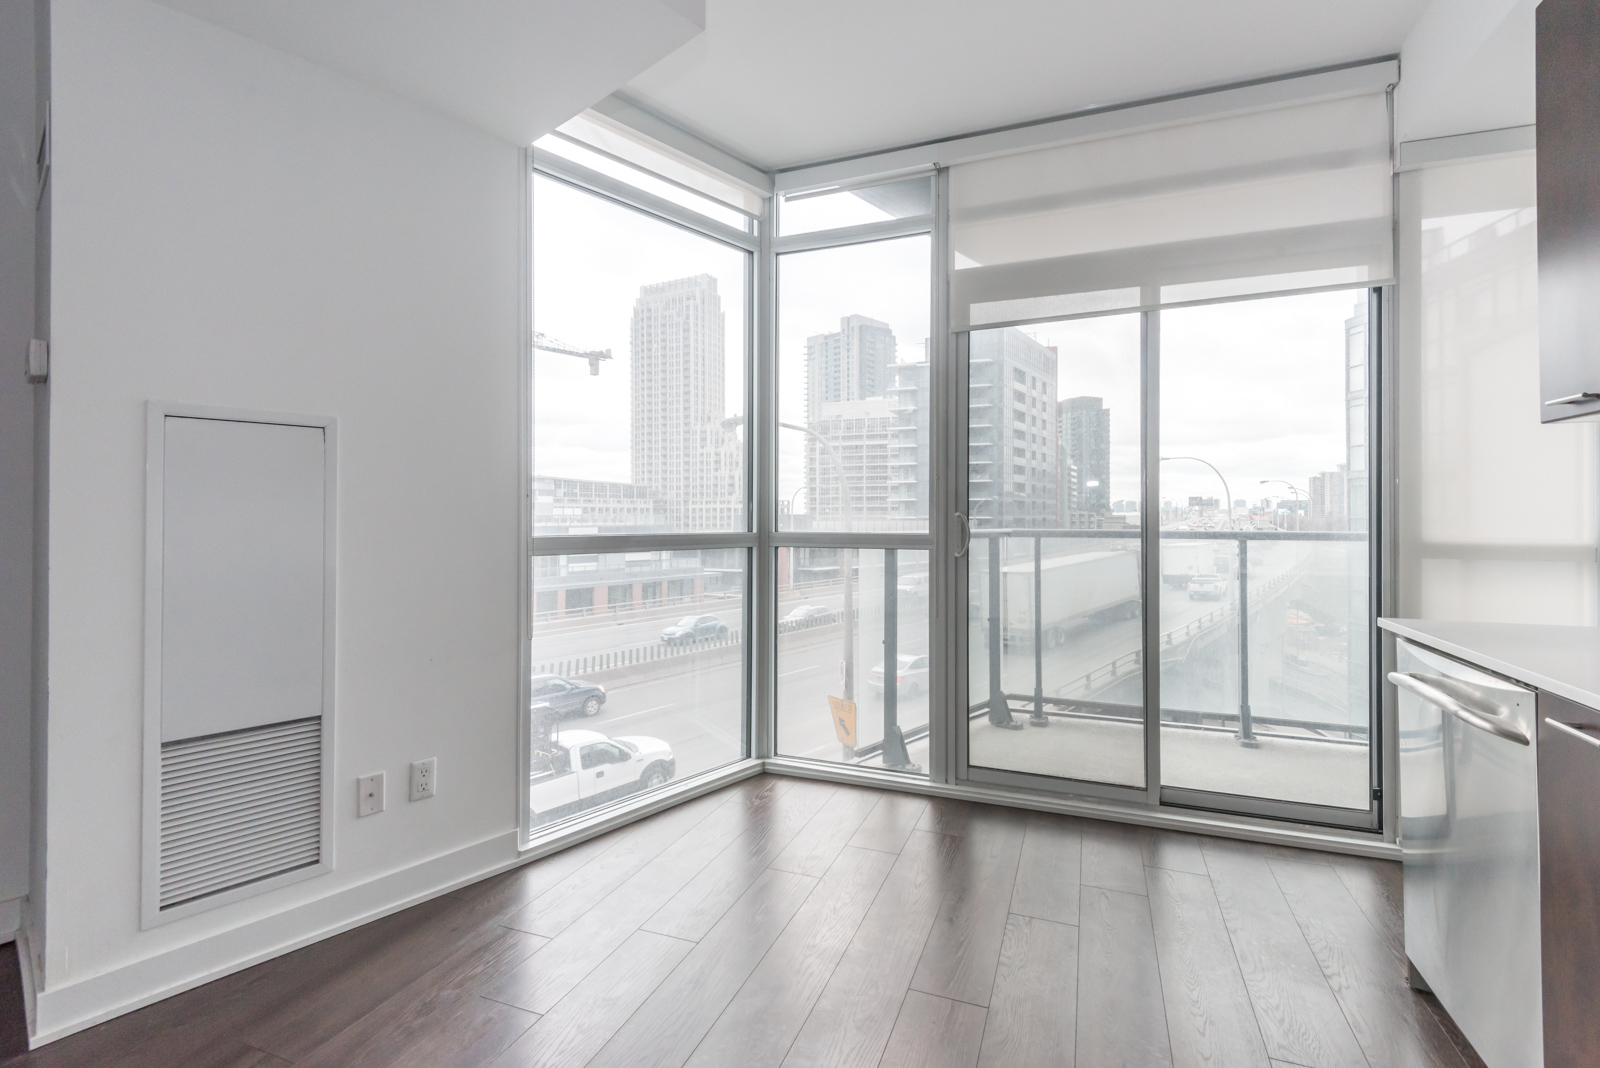 This photo shows the condo's large windows and so much of the city beyond. There's also blinds for privacy. Furthermore, we can see the balcony and yet another gorgeous view of Toronto.